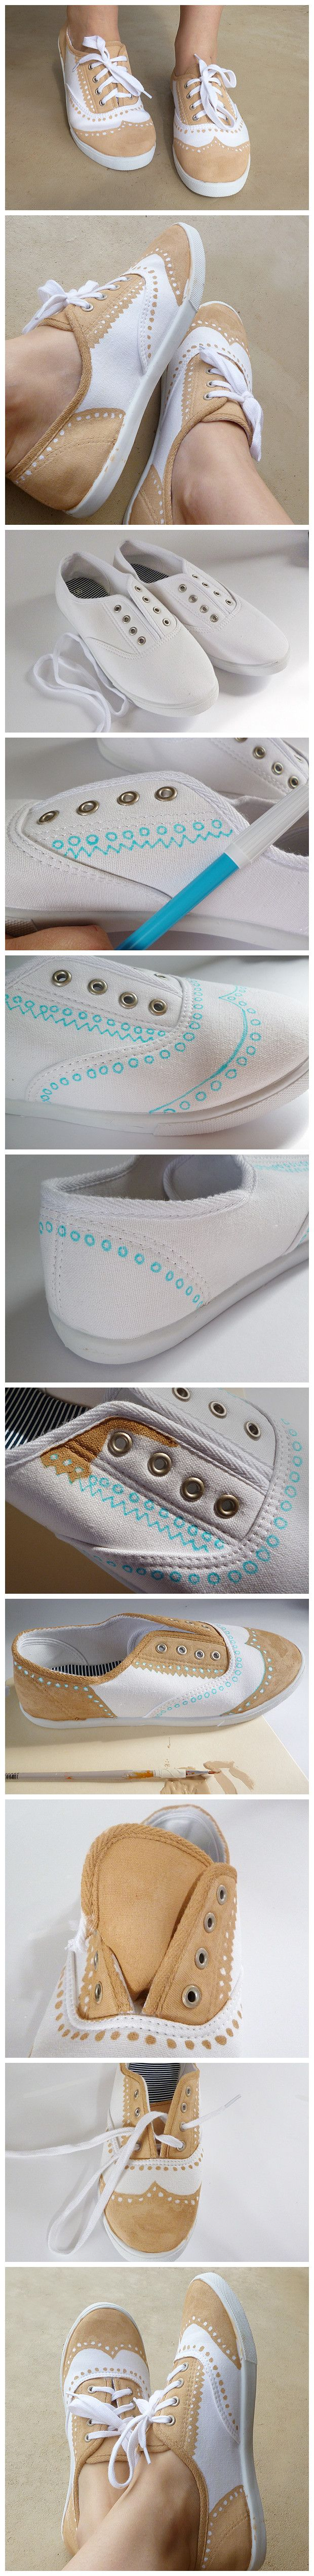 DIY Oxford Sneakers